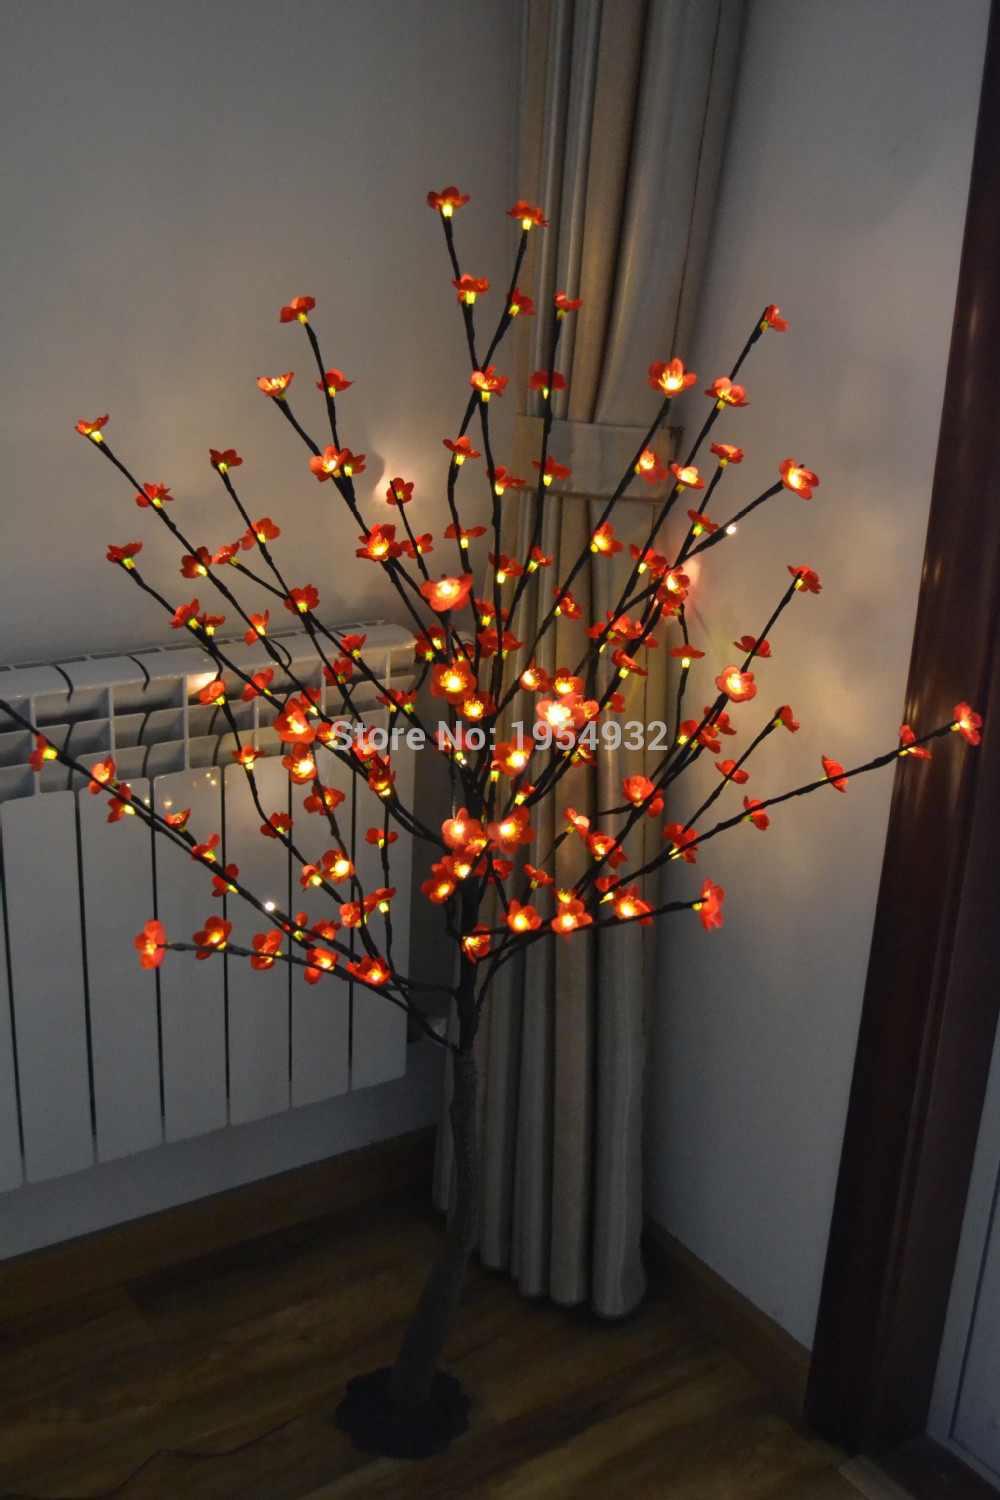 light up branches for vase of best 52 blossom plum cherry led tree light in 3v voltage with base with regard to free shipping 52 160pcs blossom plum cherry led tree light in 3v voltage with base branch tree light with blossome